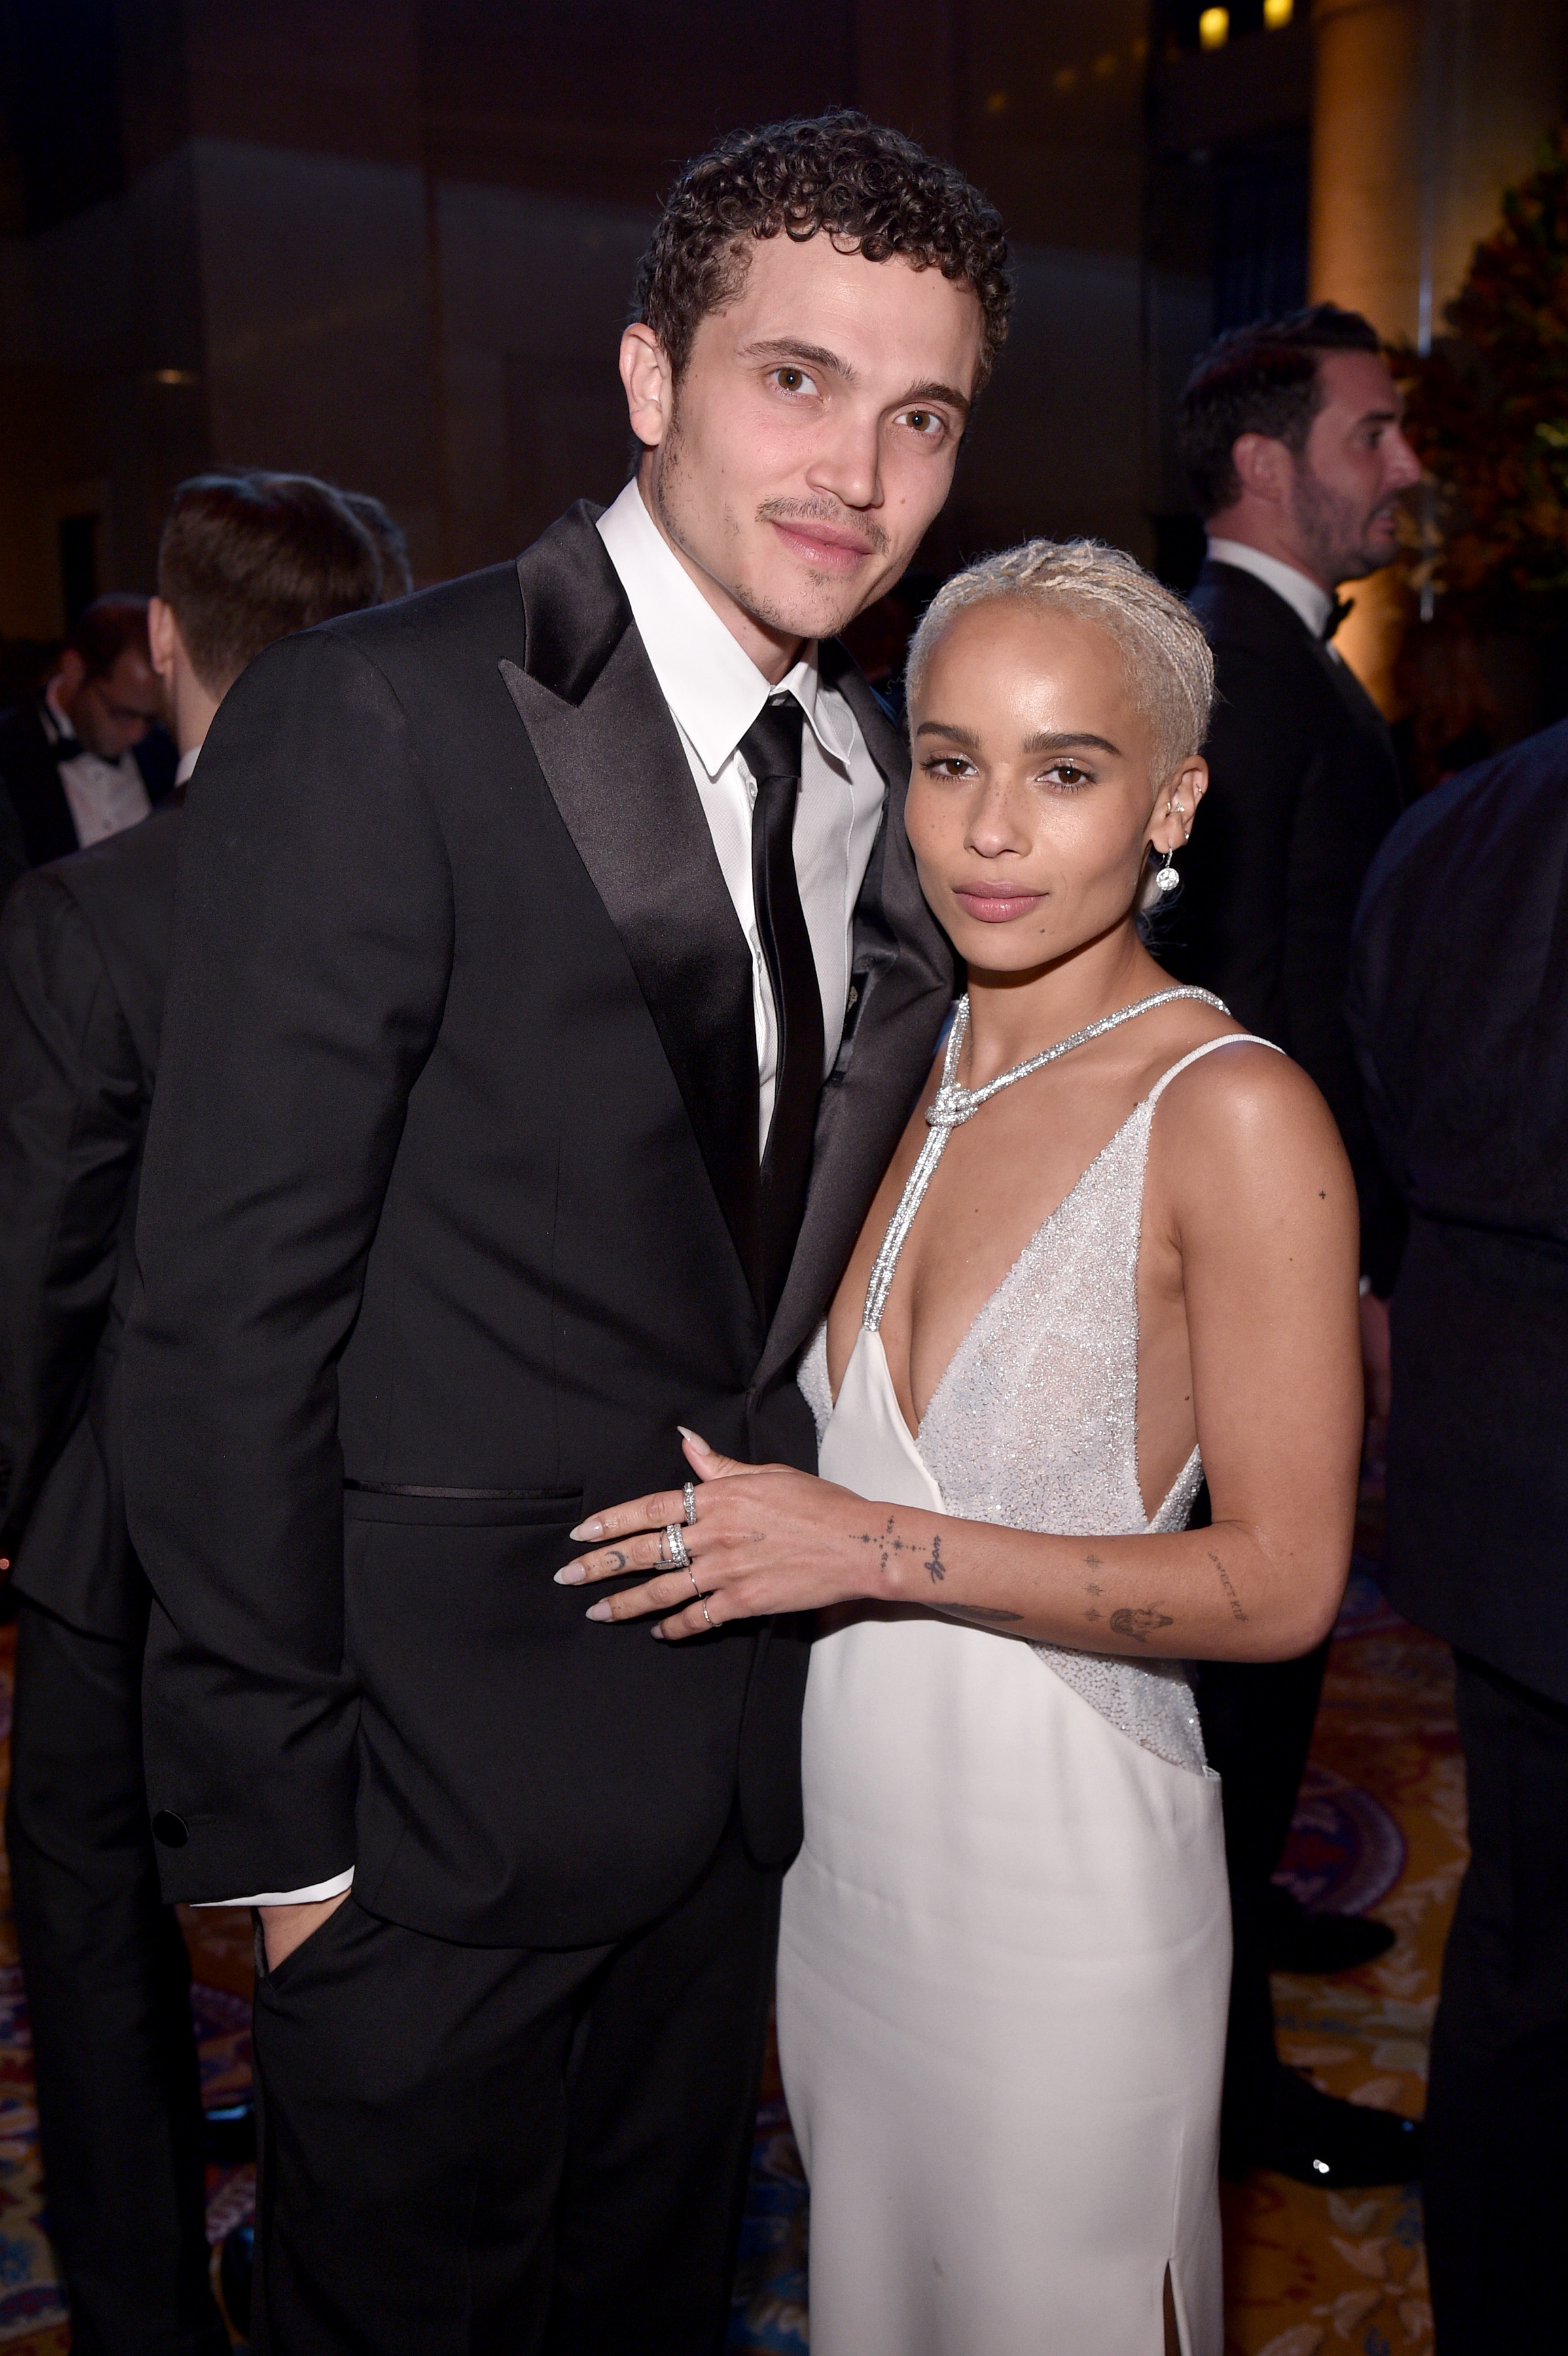 NEW YORK, NY - FEBRUARY 08:  Actor Karl Glusman and Model Zoe Kravitz attend as Moet & Chandon Toasts to the amfAR New York Gala At Cipriani Wall Street at Cipriani Wall Street on February 8, 2017 in New York City.  (Photo by Bryan Bedder/Getty Images for Moet & Chandon)